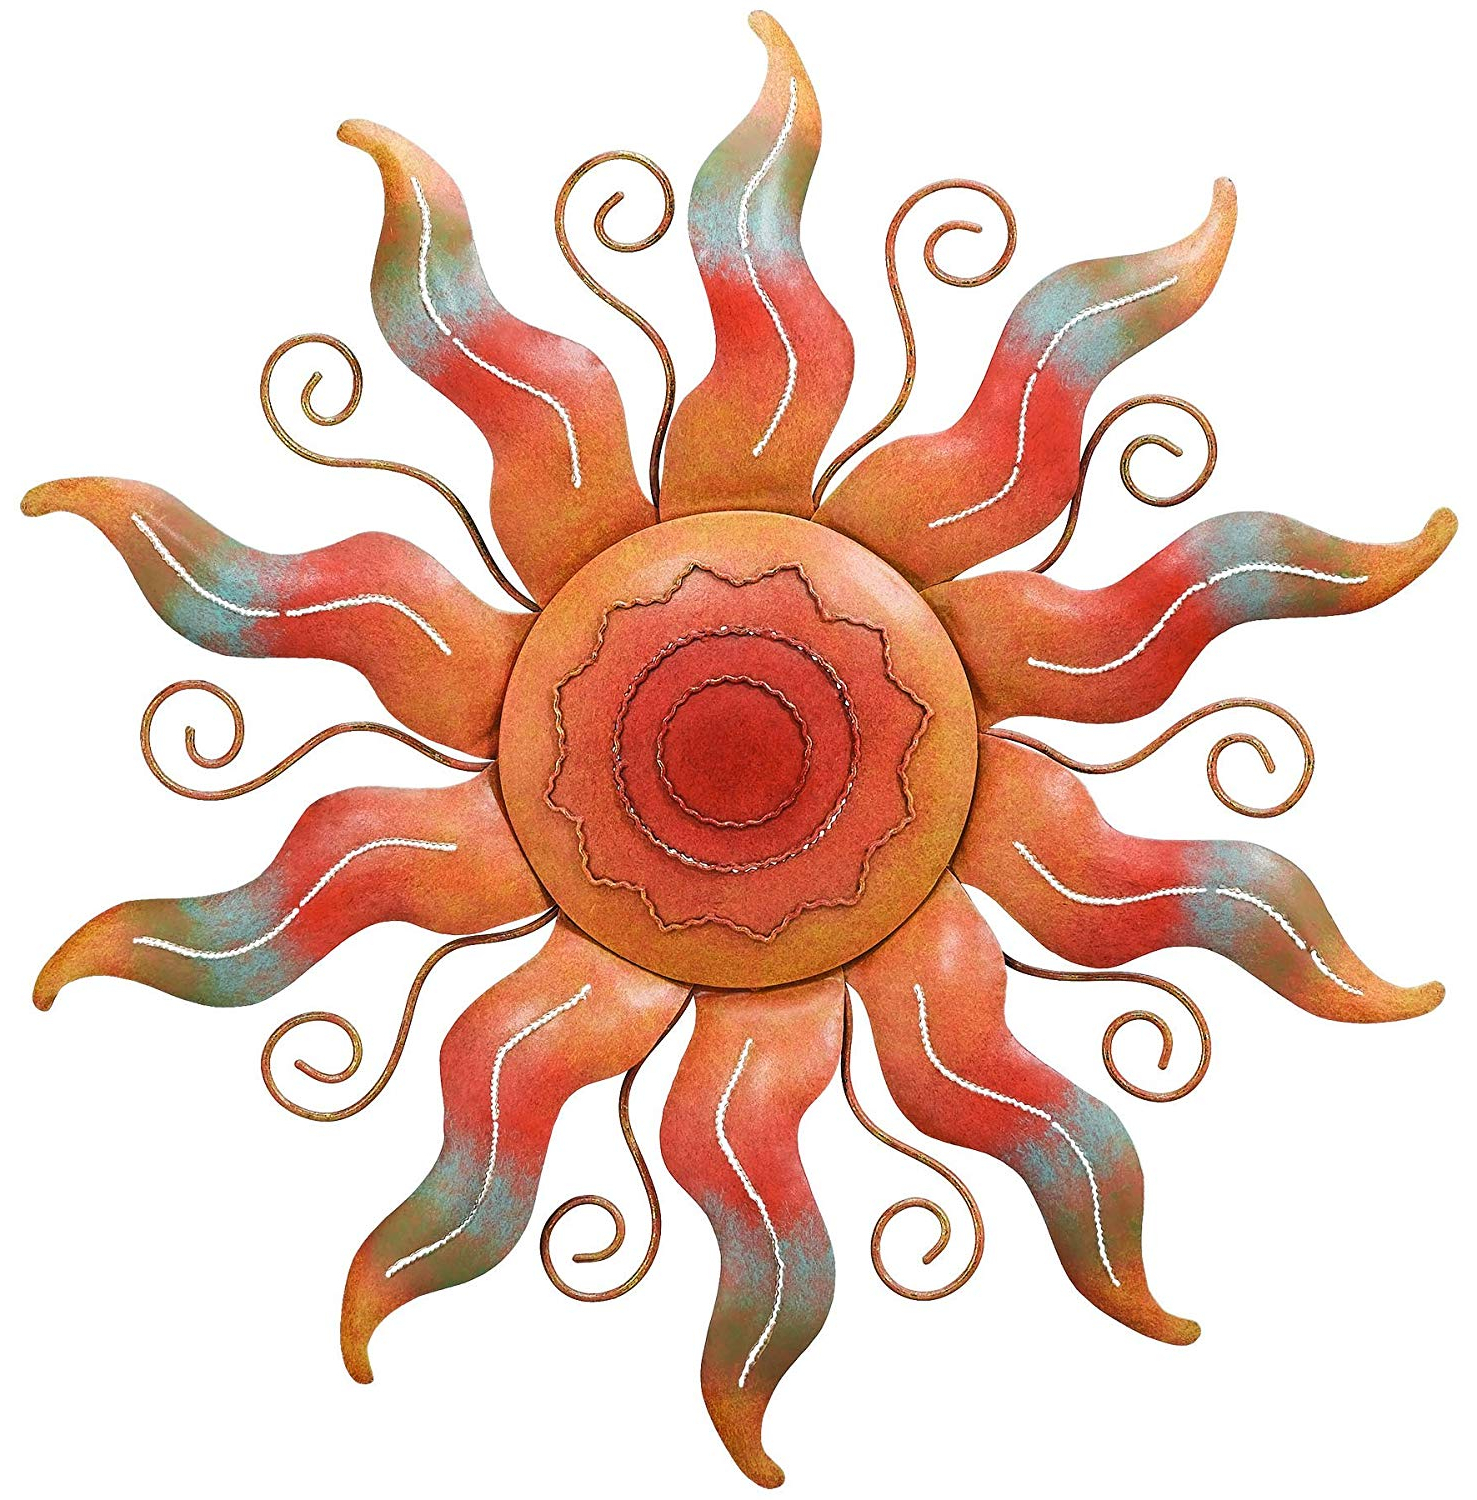 Amazon : Regal Art &gift Sun Wall Decor : Wall Sculptures In Most Recent Aurora Sun Wall Decor (View 3 of 20)